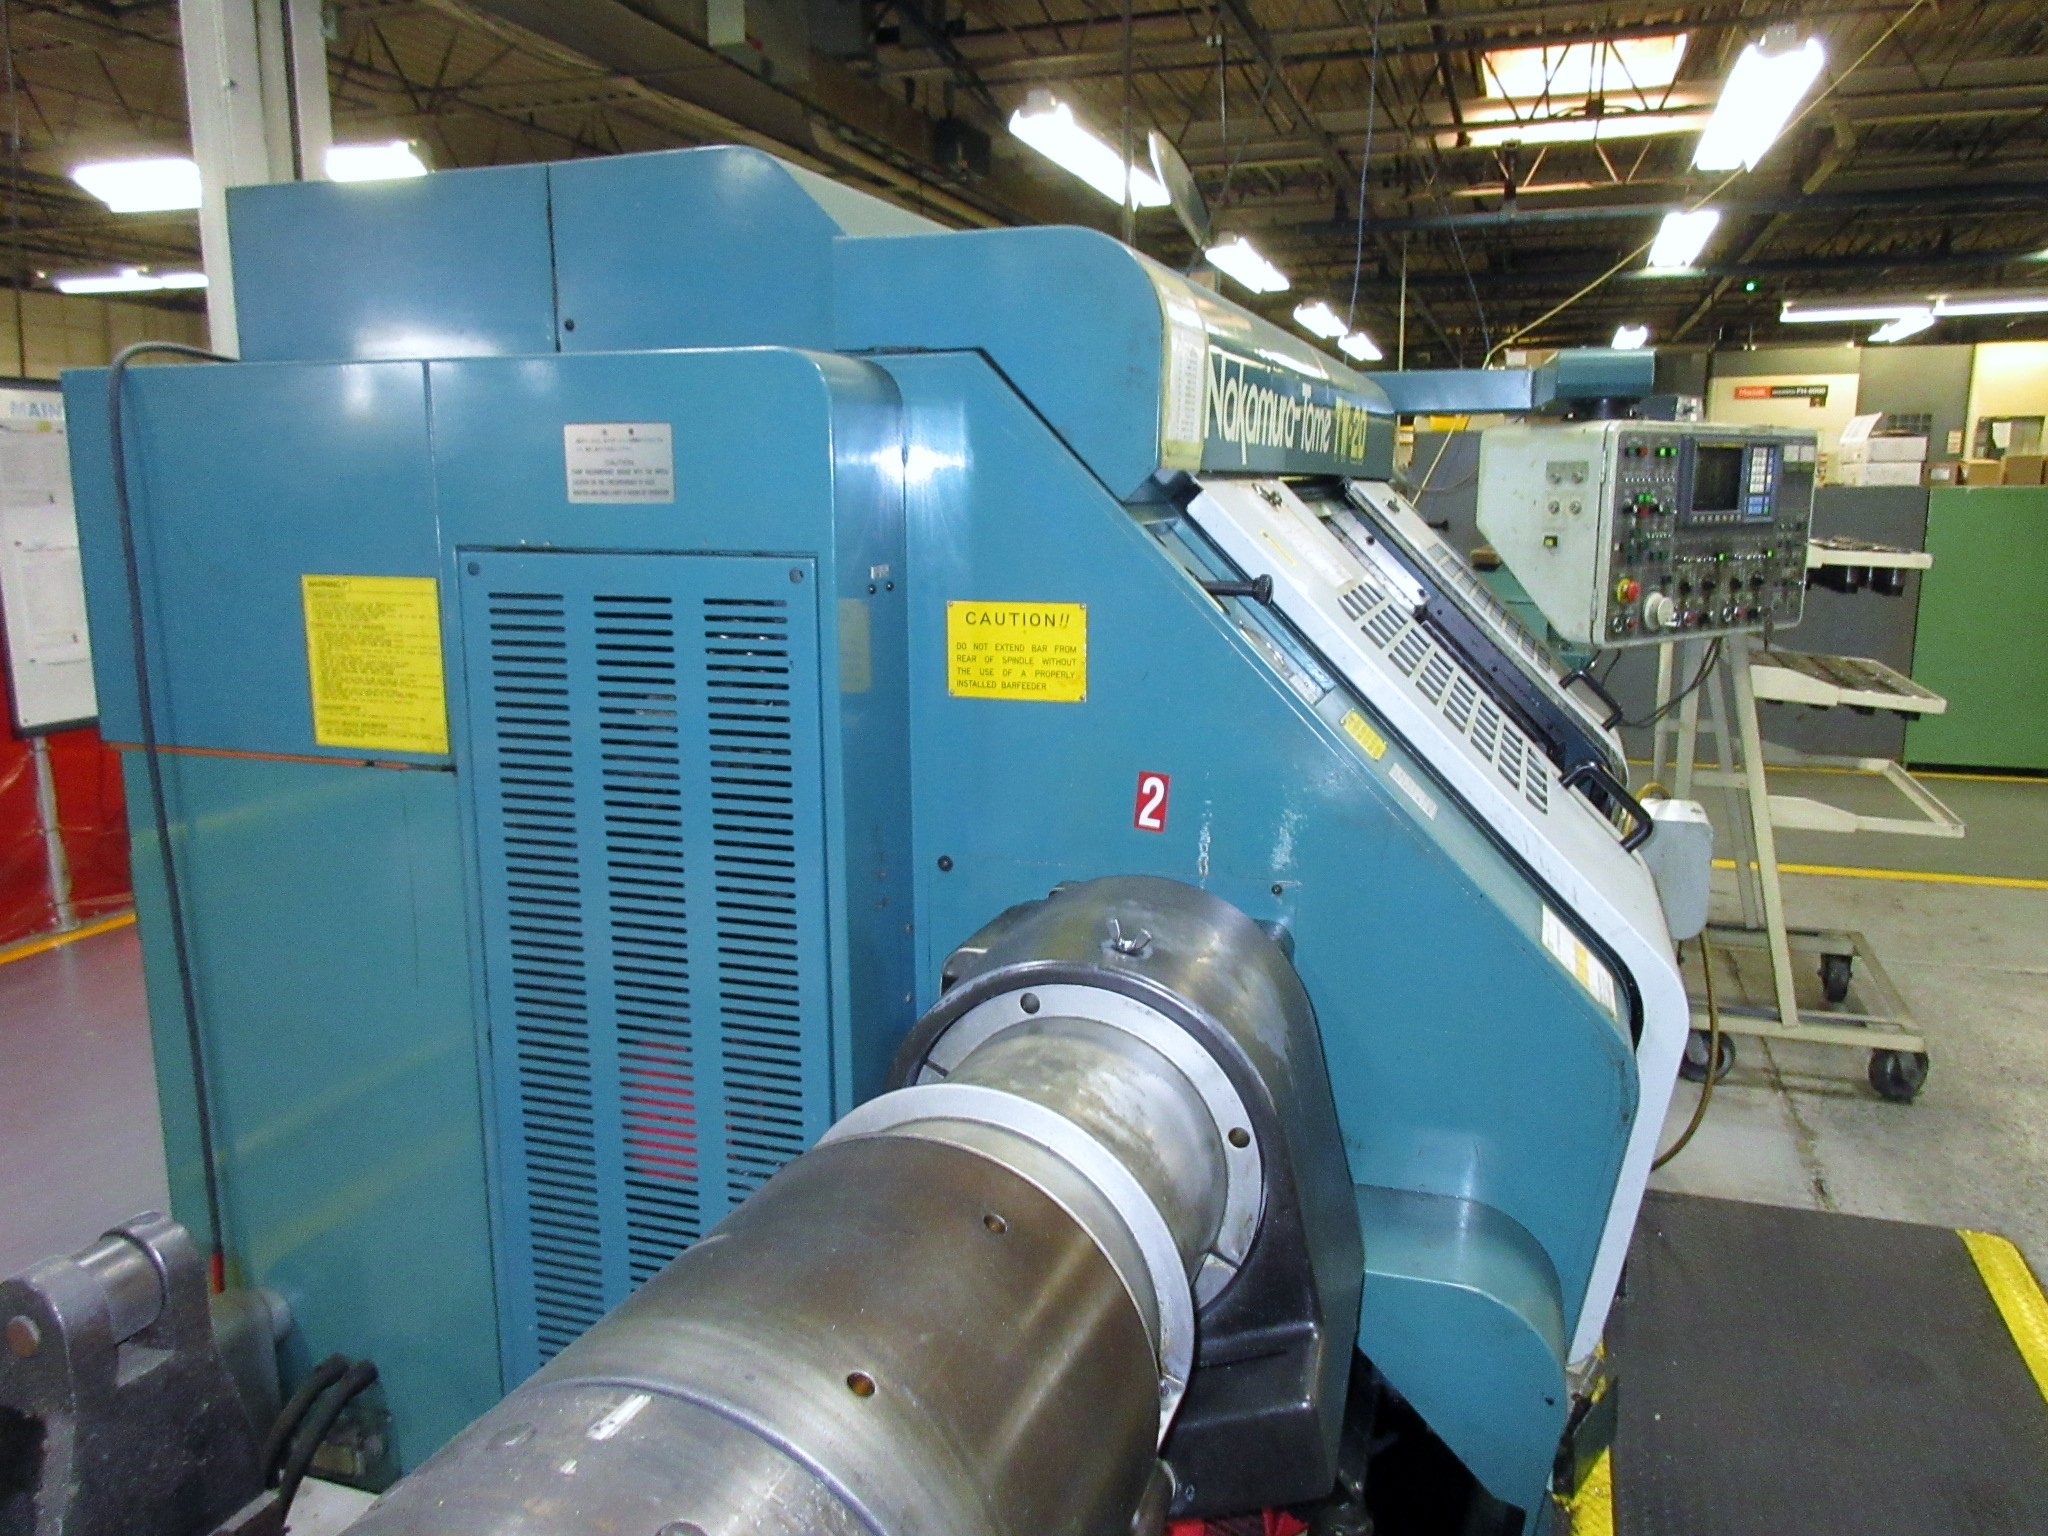 NAKAMURA TOME TW-20 6-AXIS CNC TWIN SPINDLE TURNING CENTER - Image 10 of 17